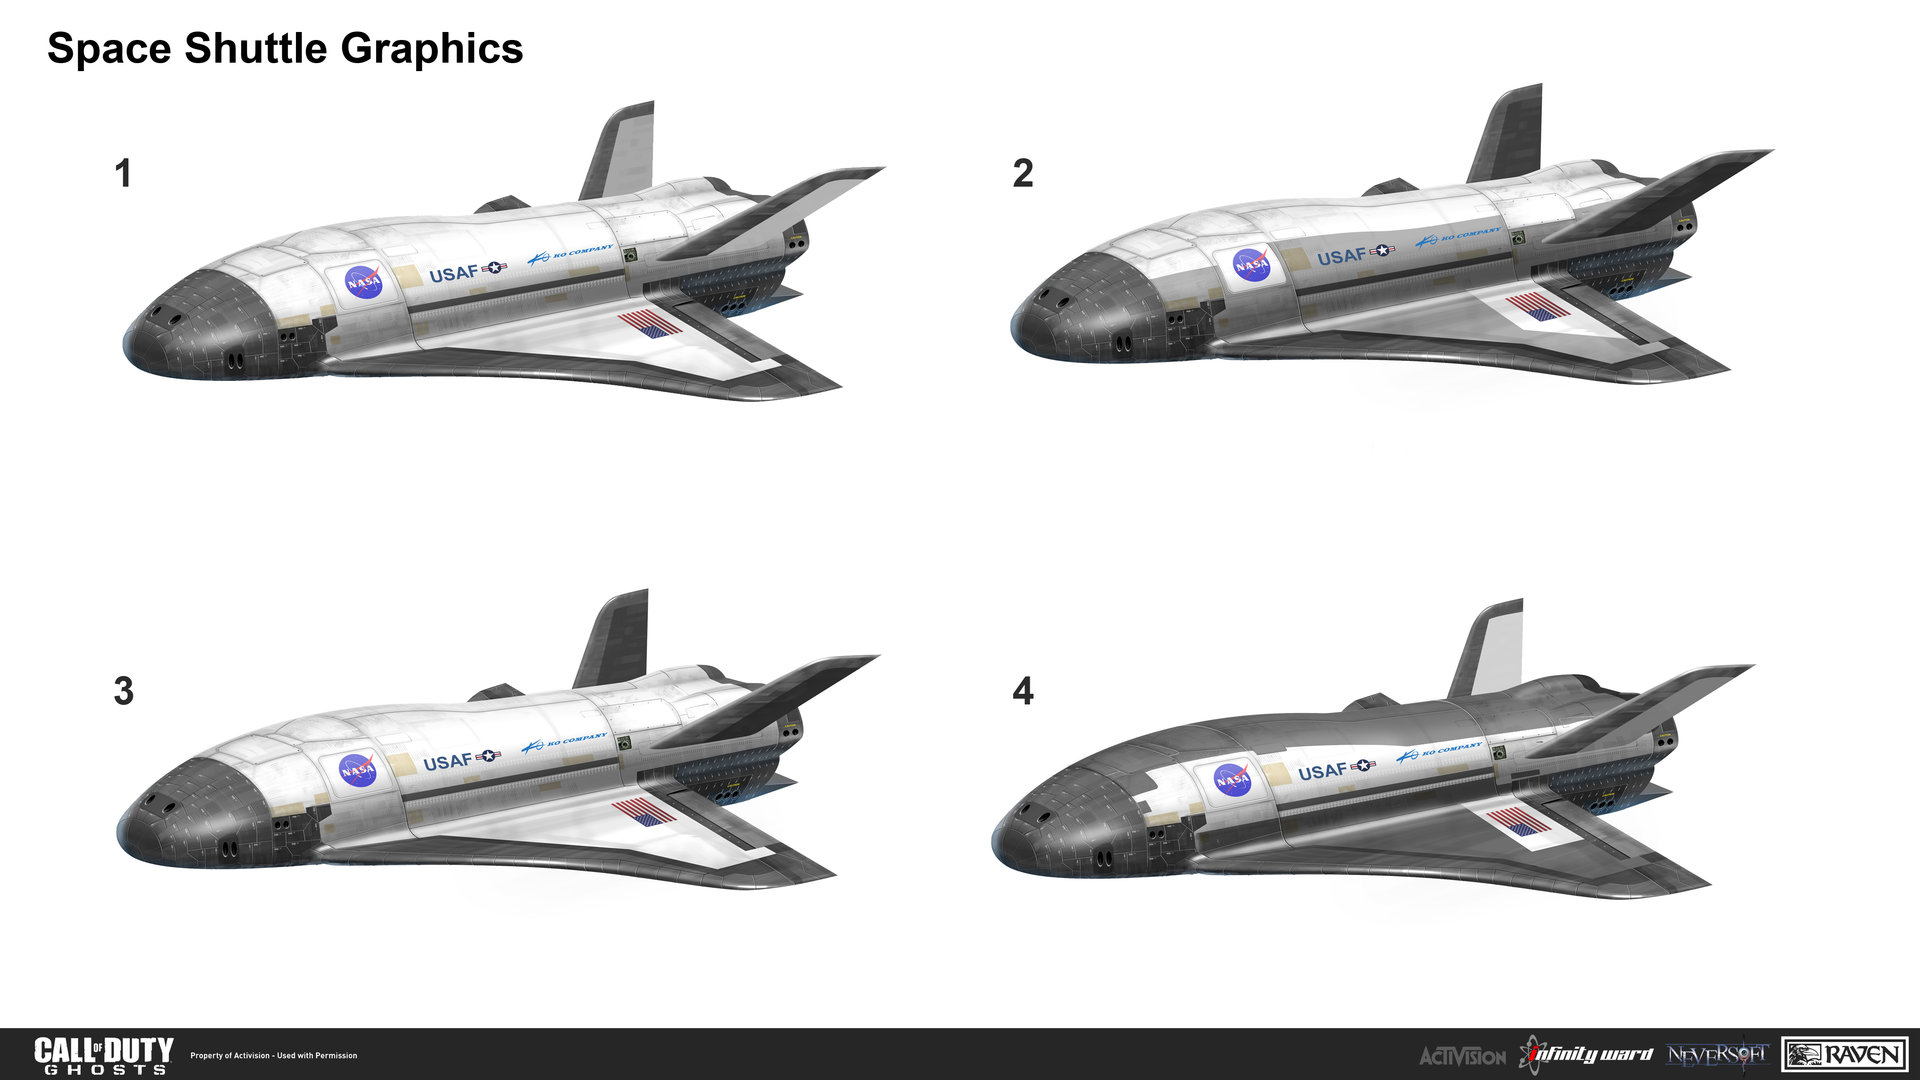 Simon ko sko 03 22 13 space2 shuttle graphics